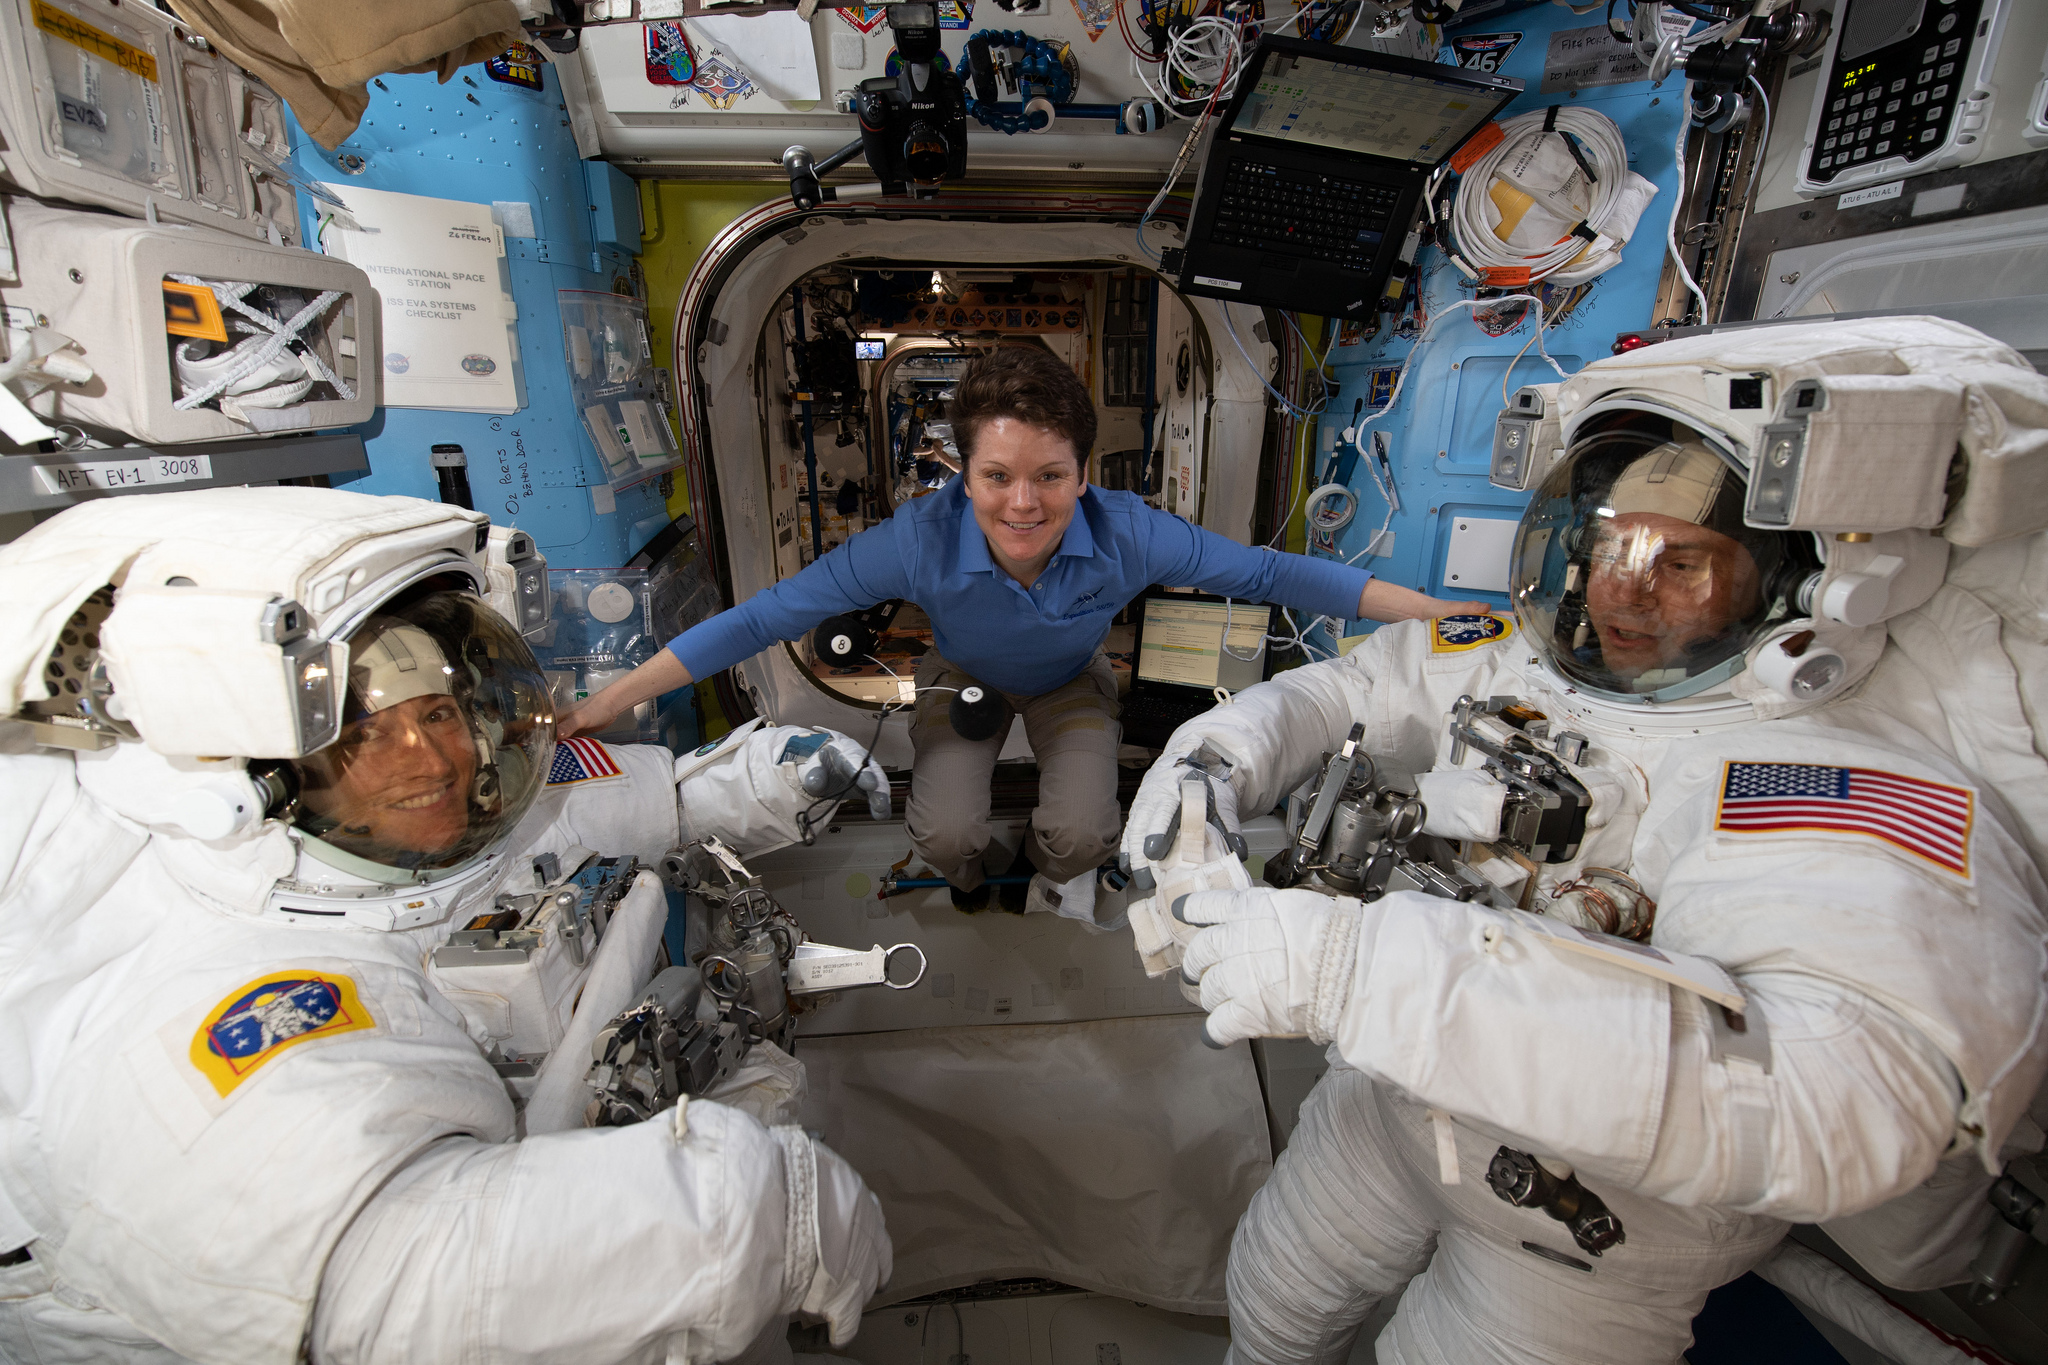 Astronauts Won't Make the 1st All Female Spacewalk After All, NASA Says | Space